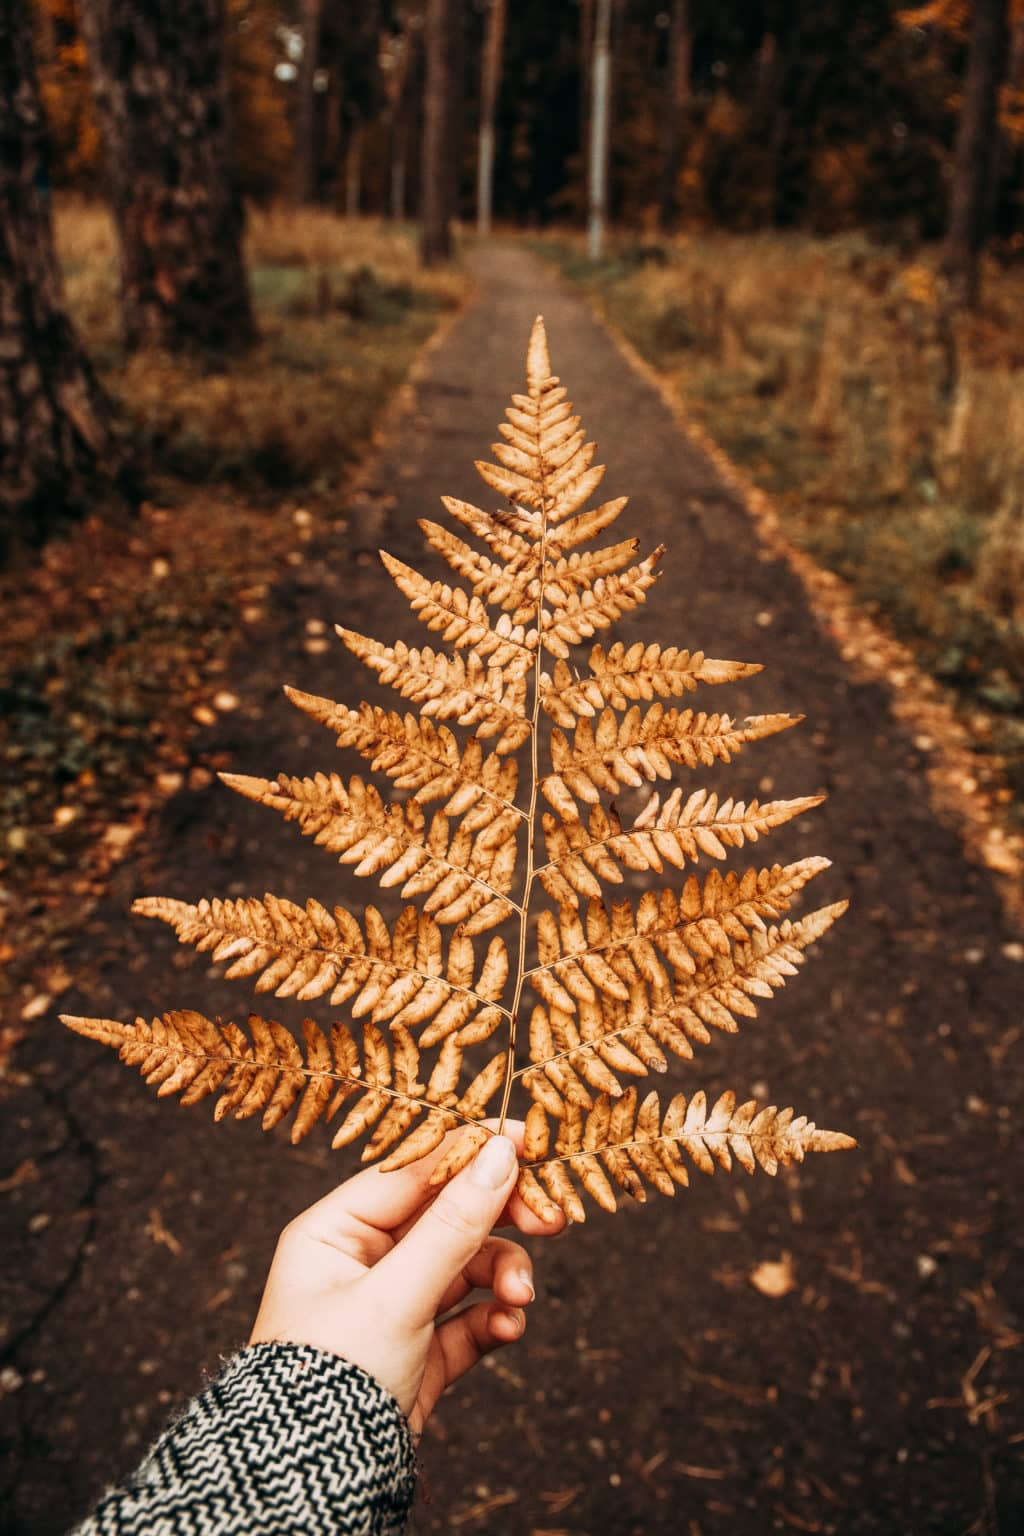 Hand holding a large fern leaf in front of a fall path lined with fallen tree leaves in autumn.